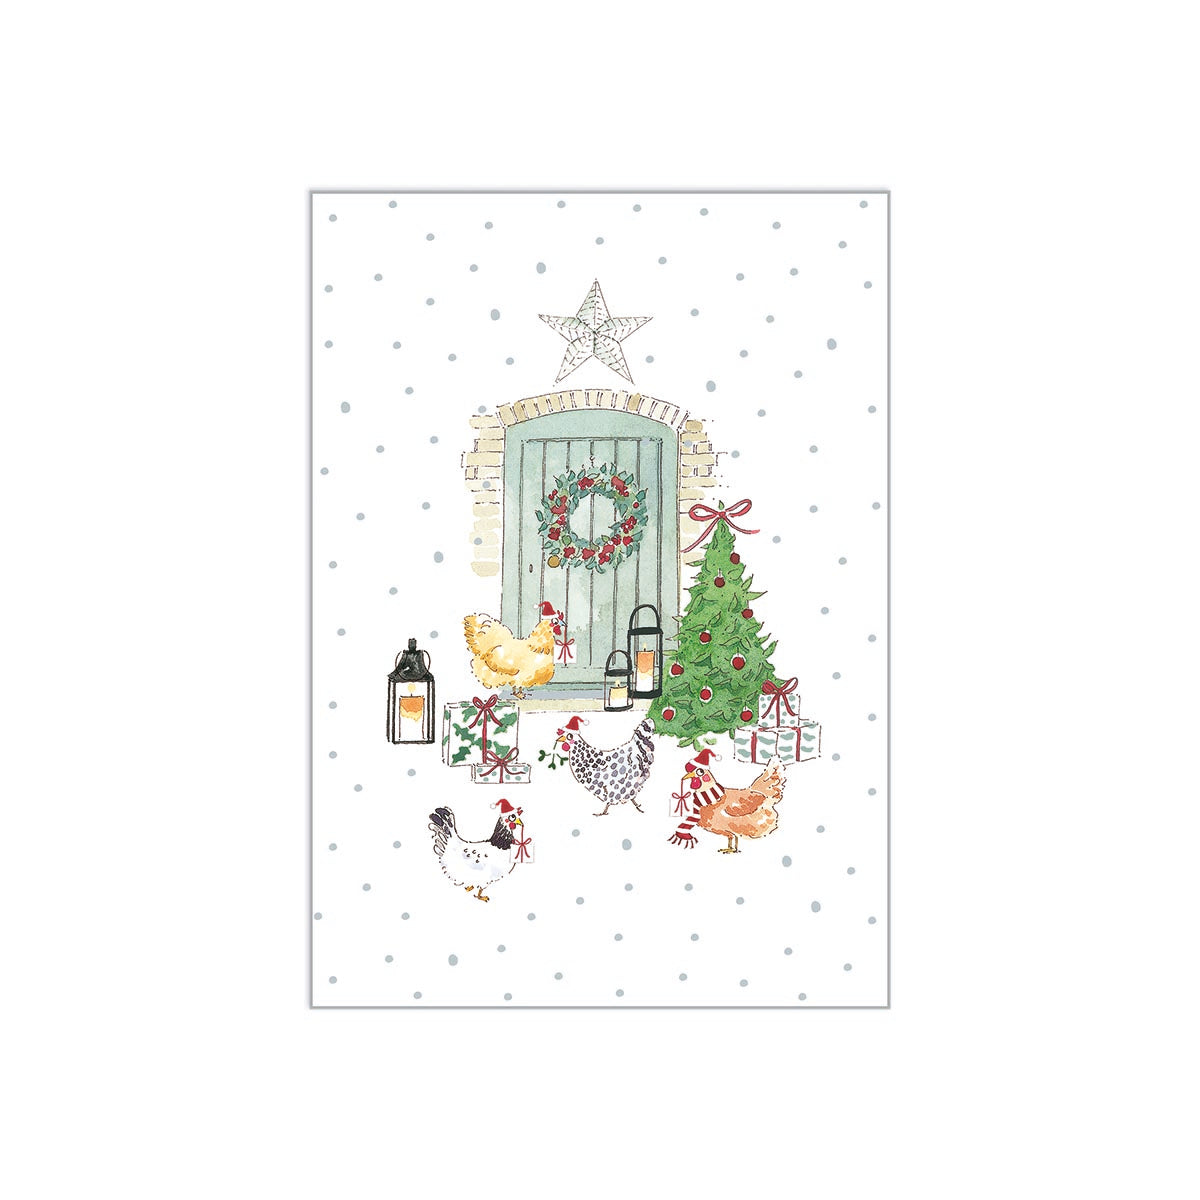 Chickens Christmas Cards (Pack of 6)